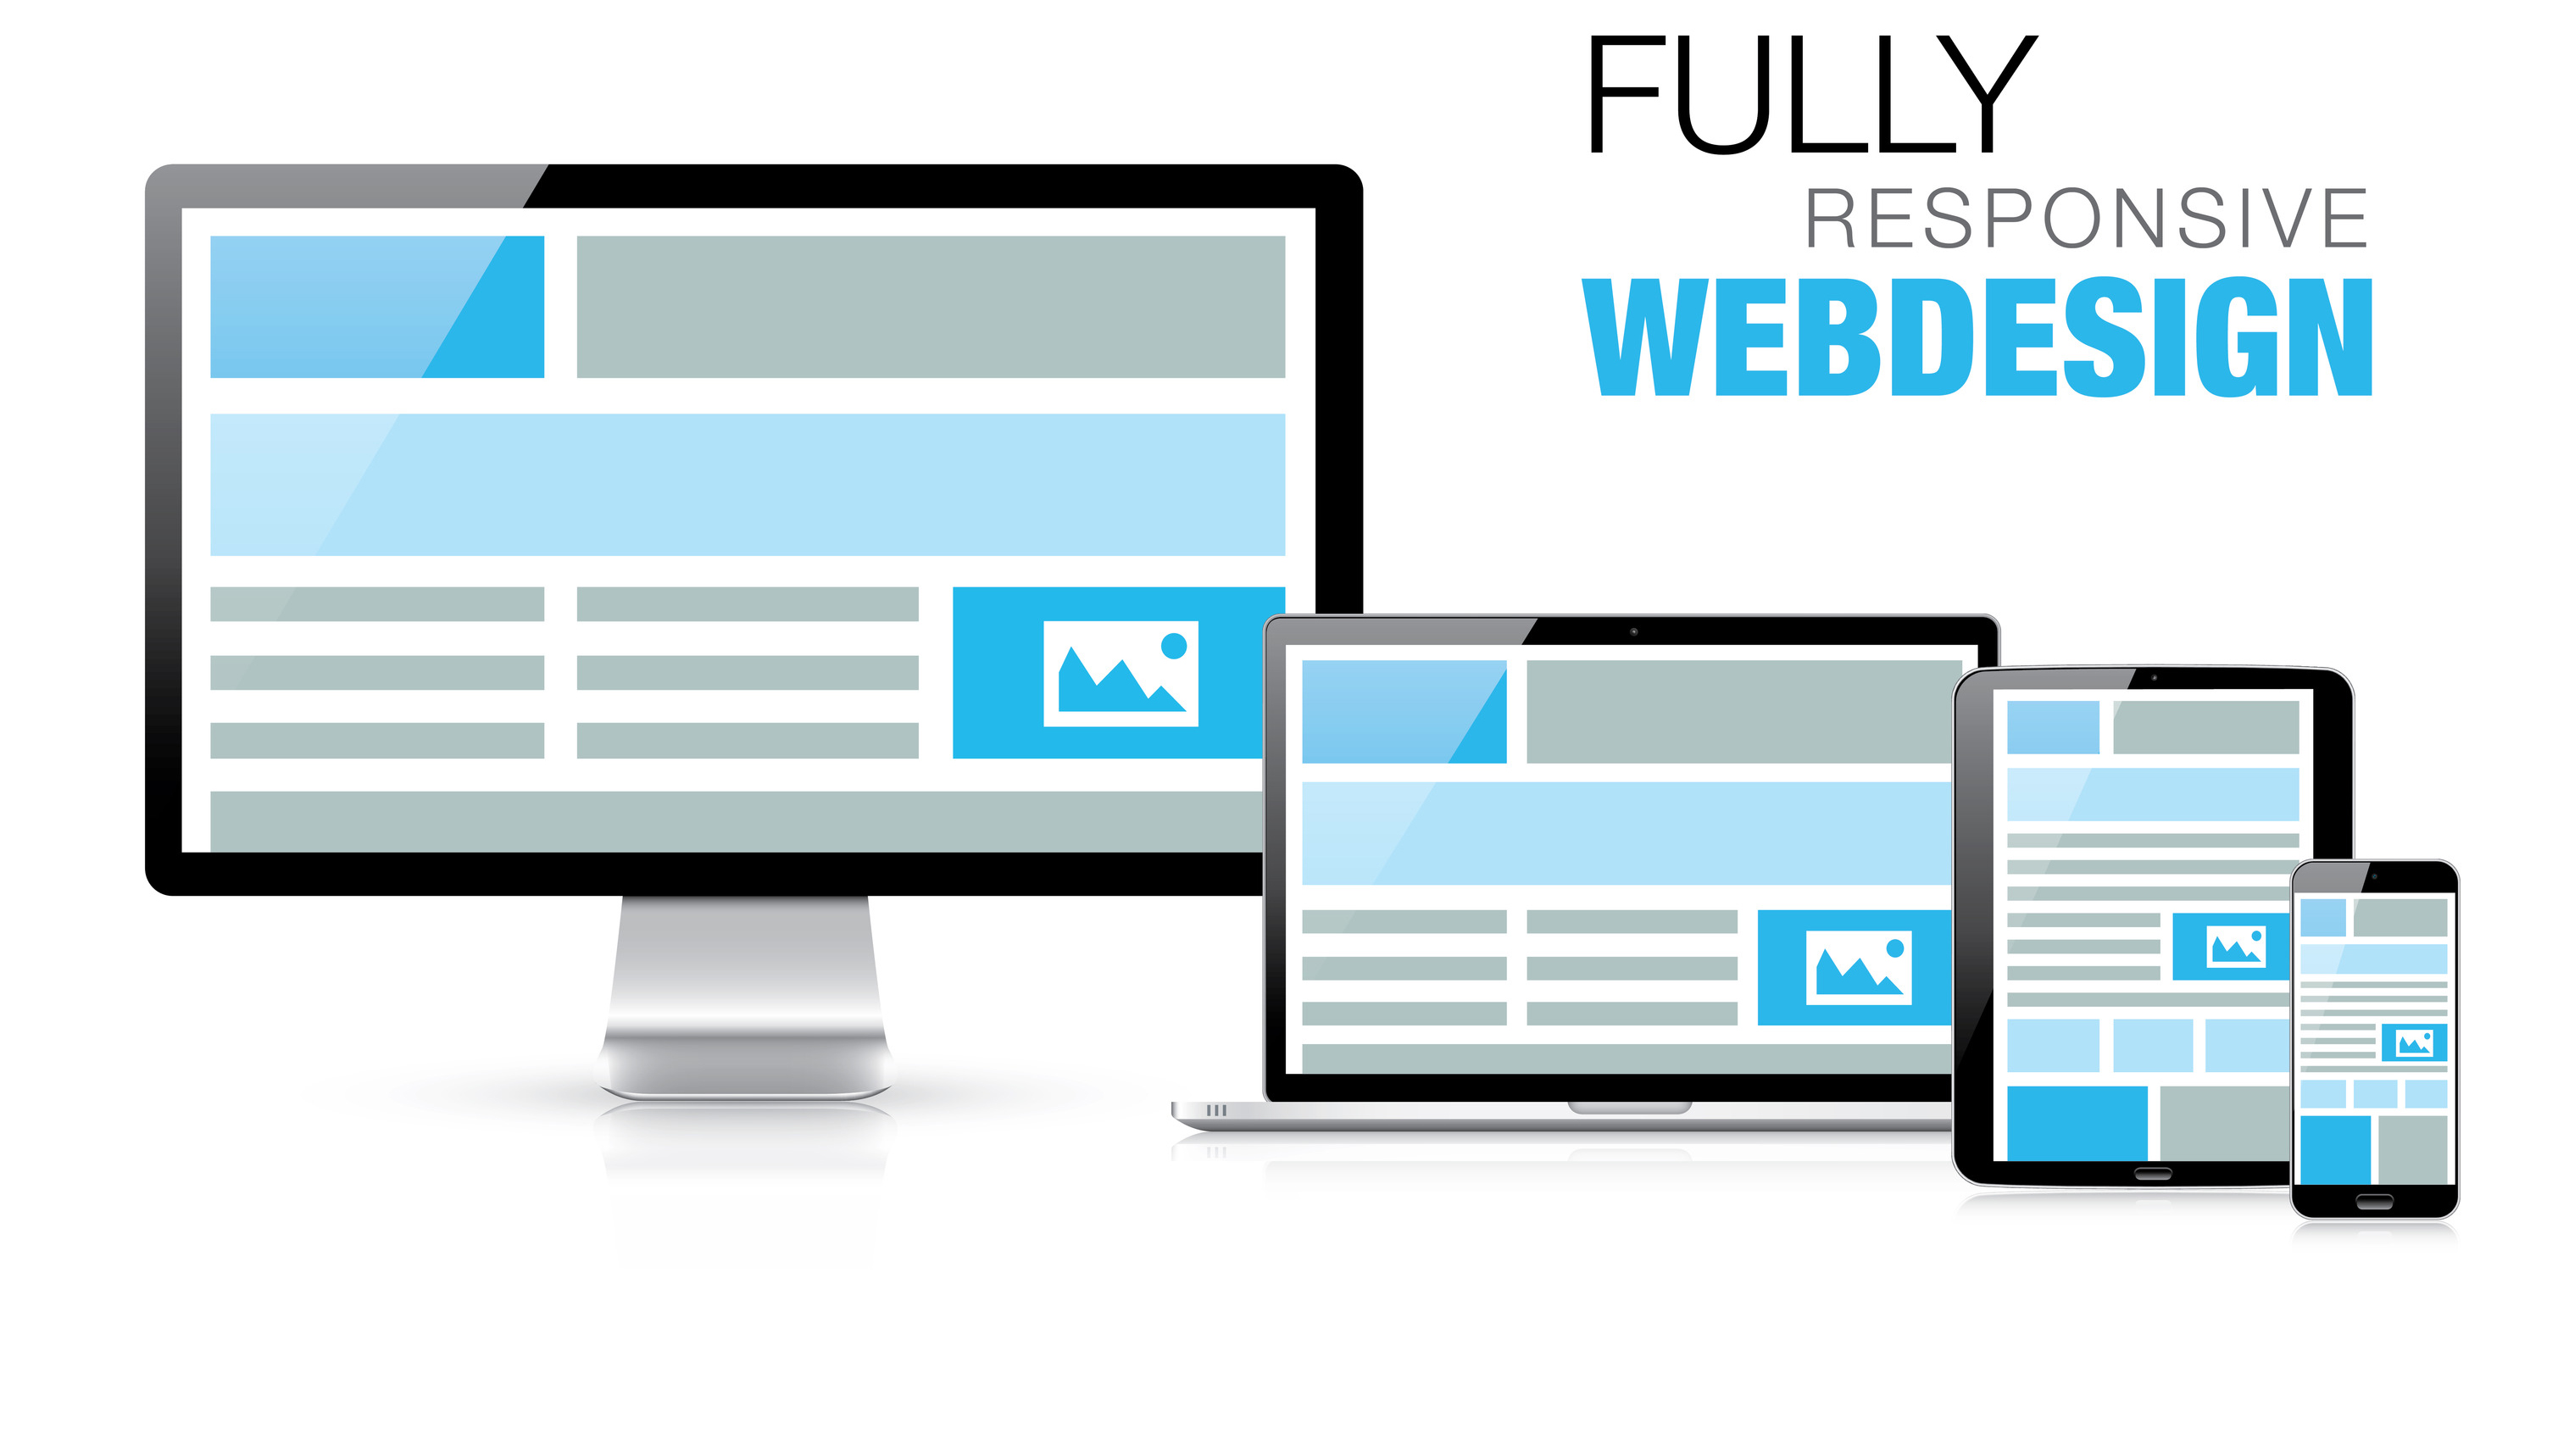 responsive website design let s face it website design is a must today ...